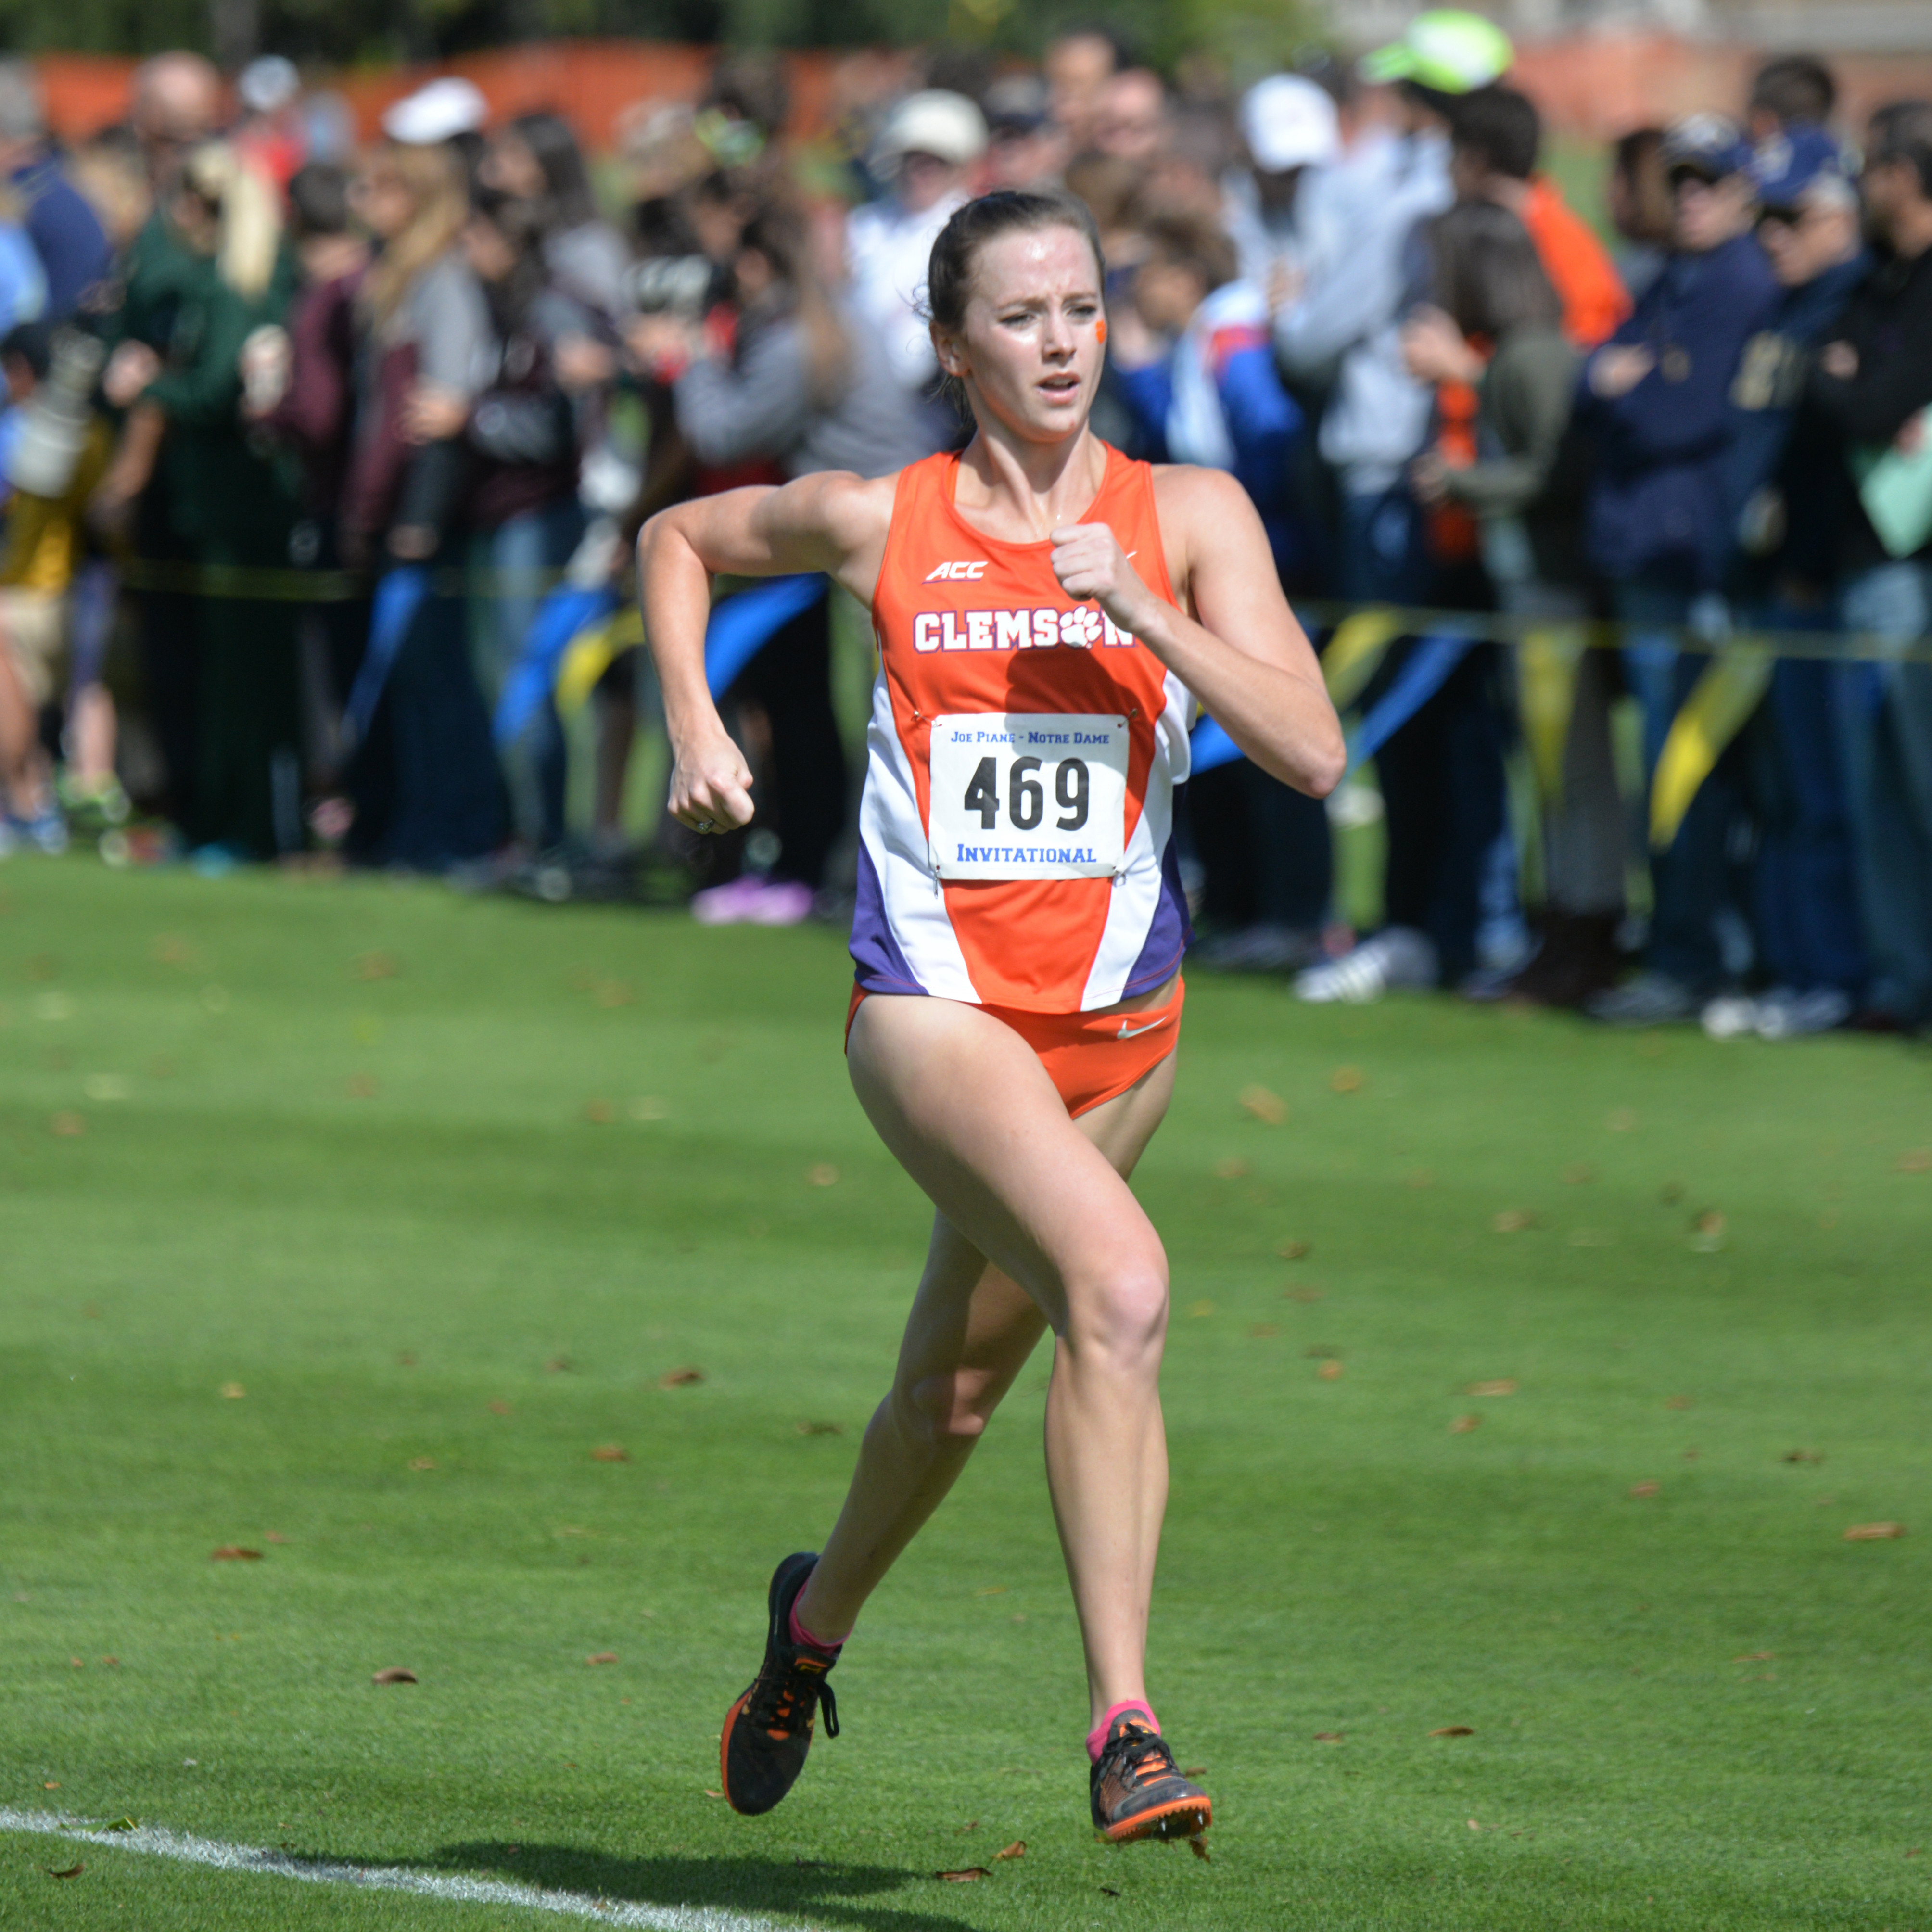 Cross Country Season Comes To A Close At Regionals